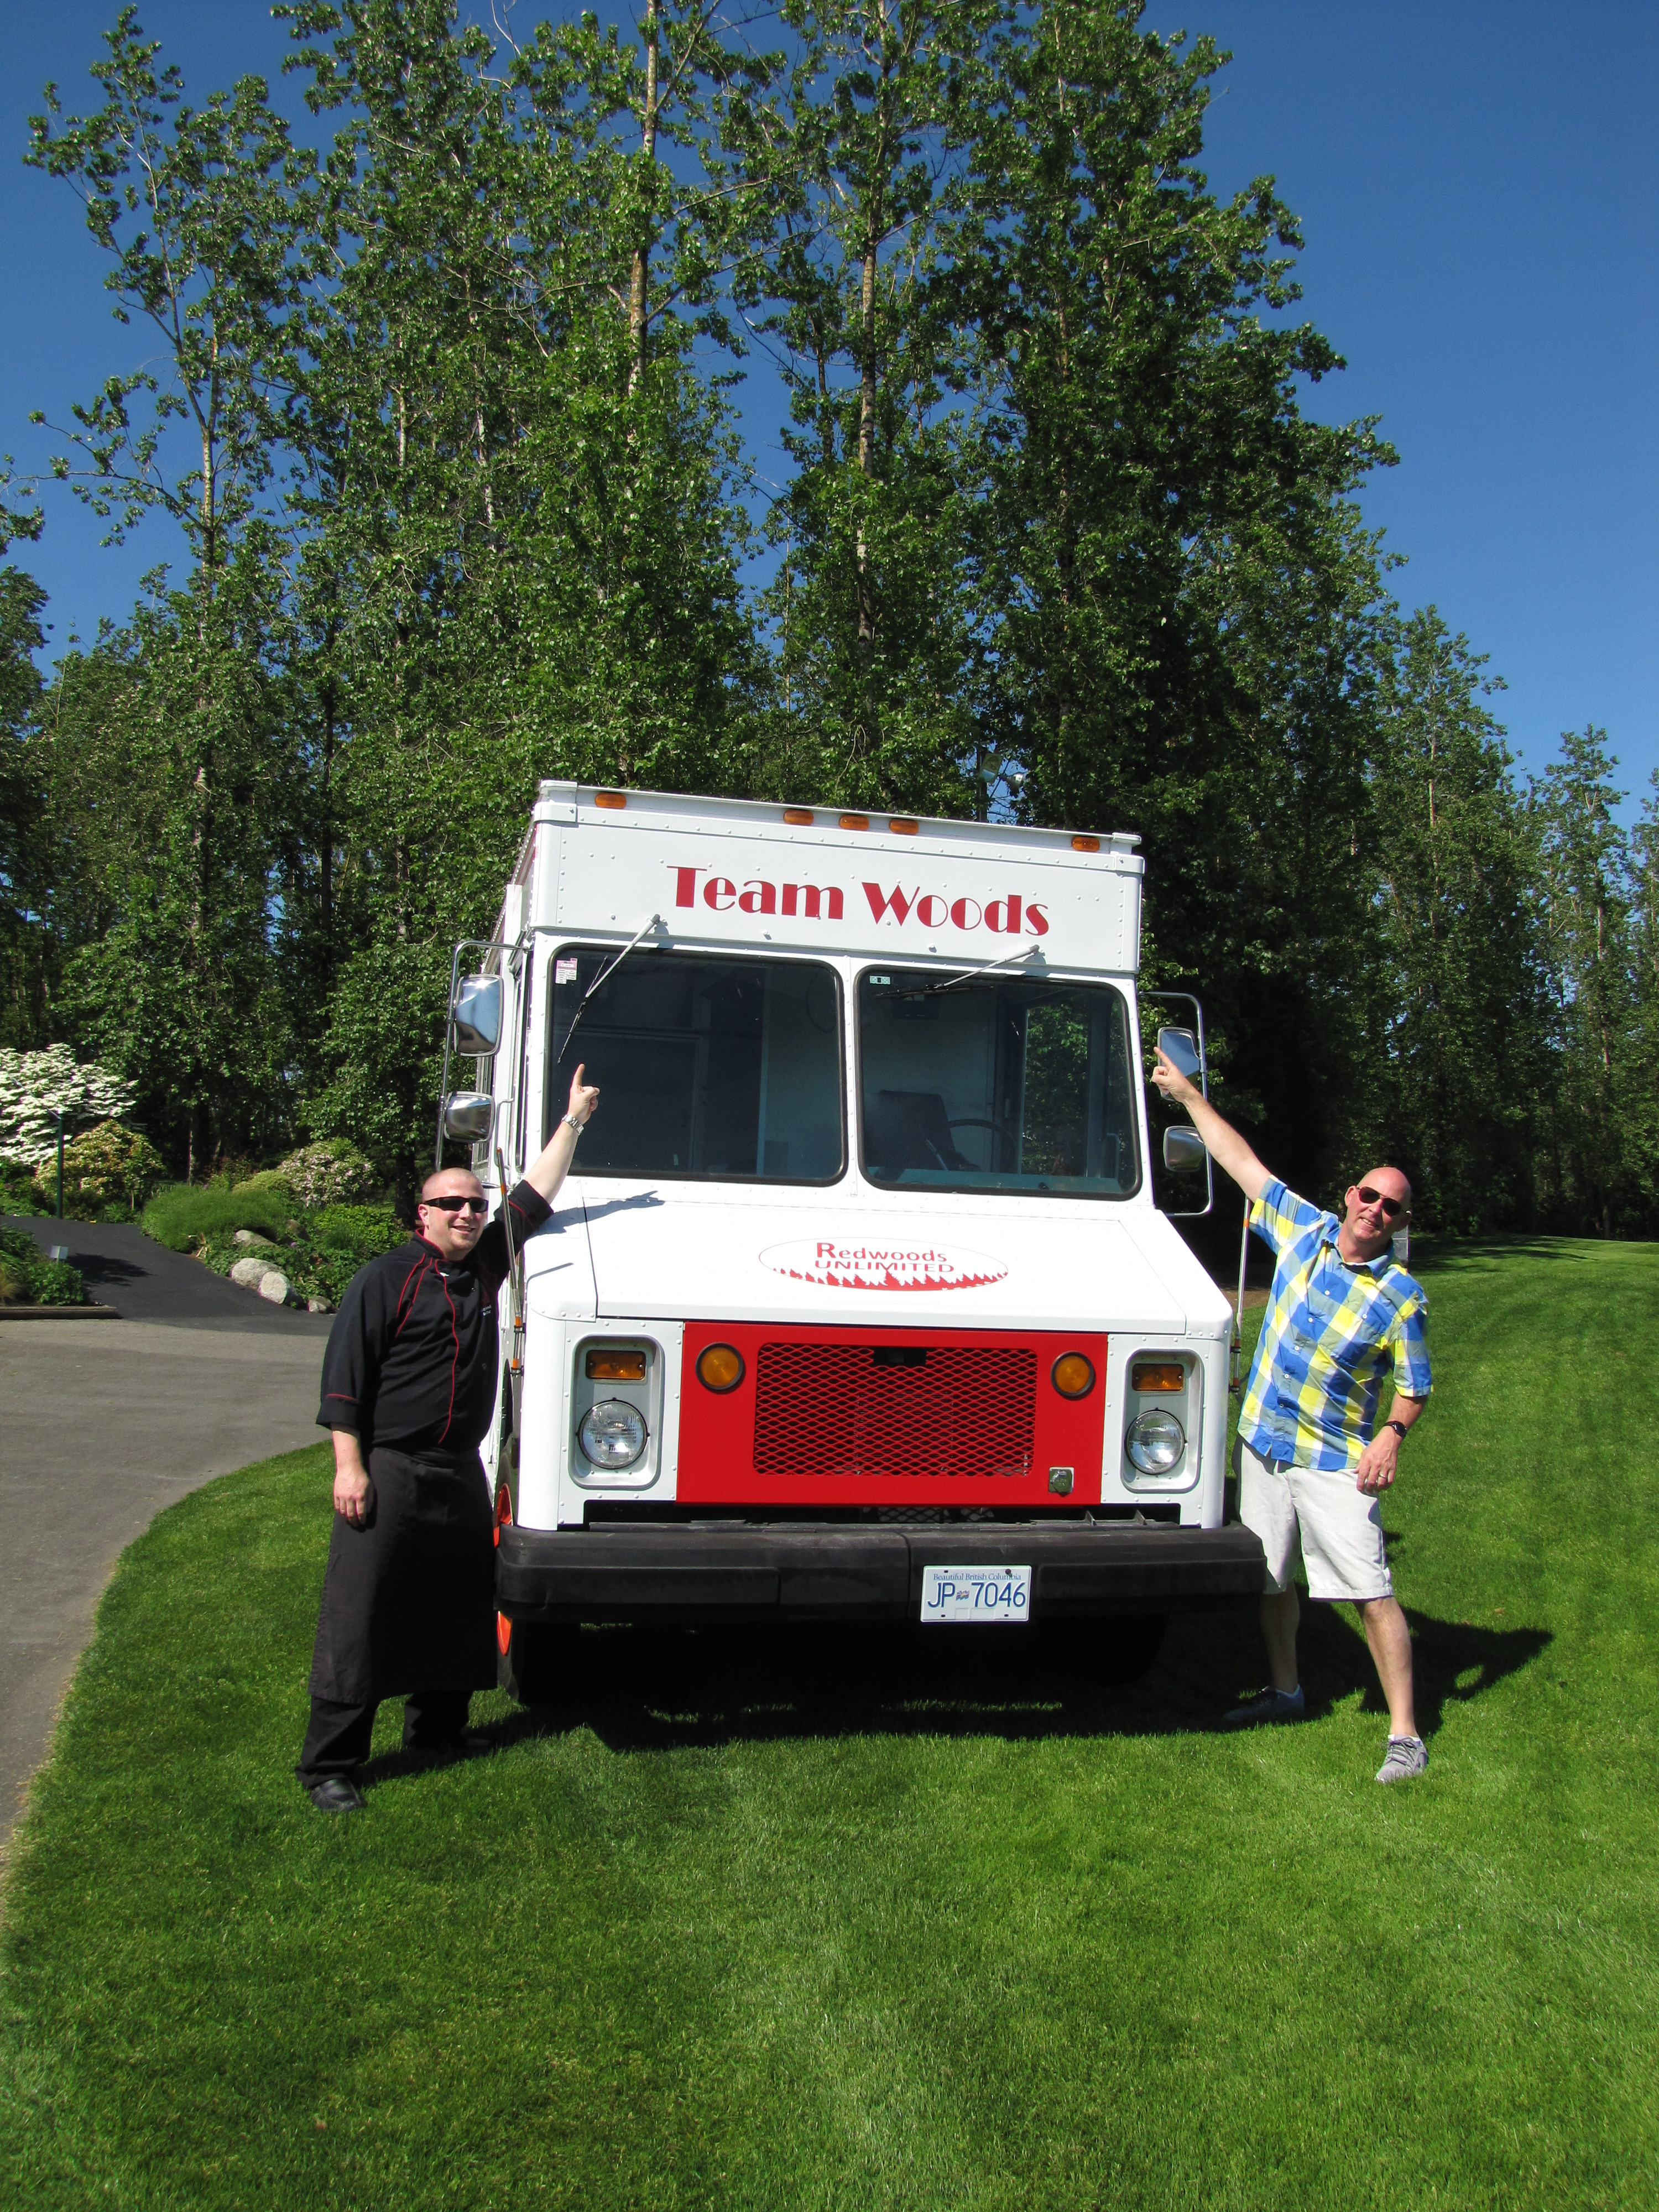 Team woods food truck